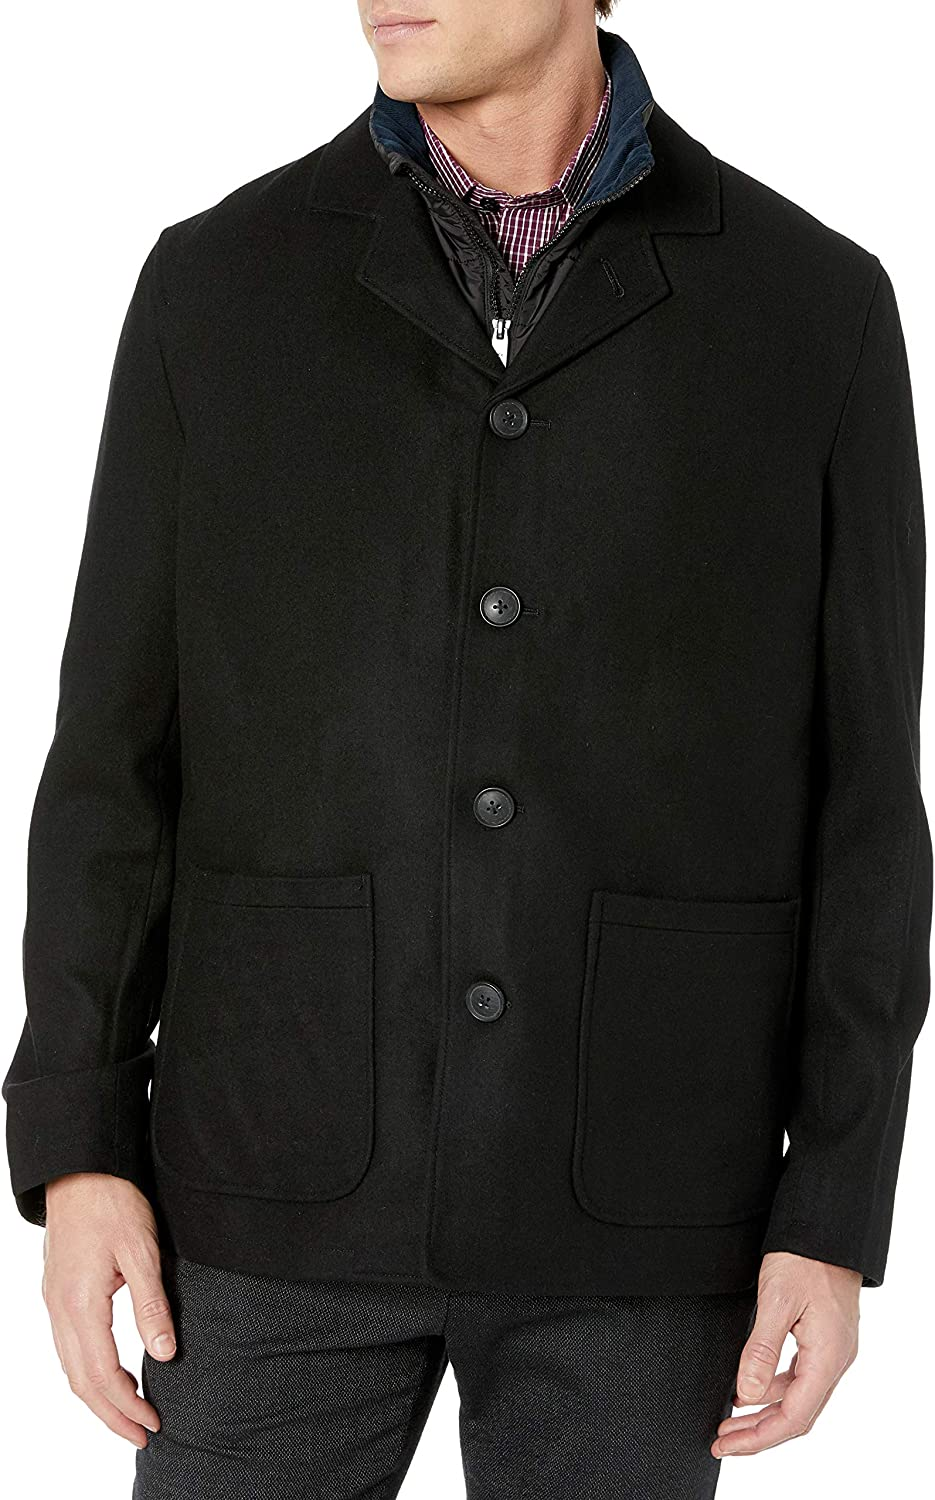 Nick Graham Mens Triboro 3 in 1 Wool Jacket with Vest